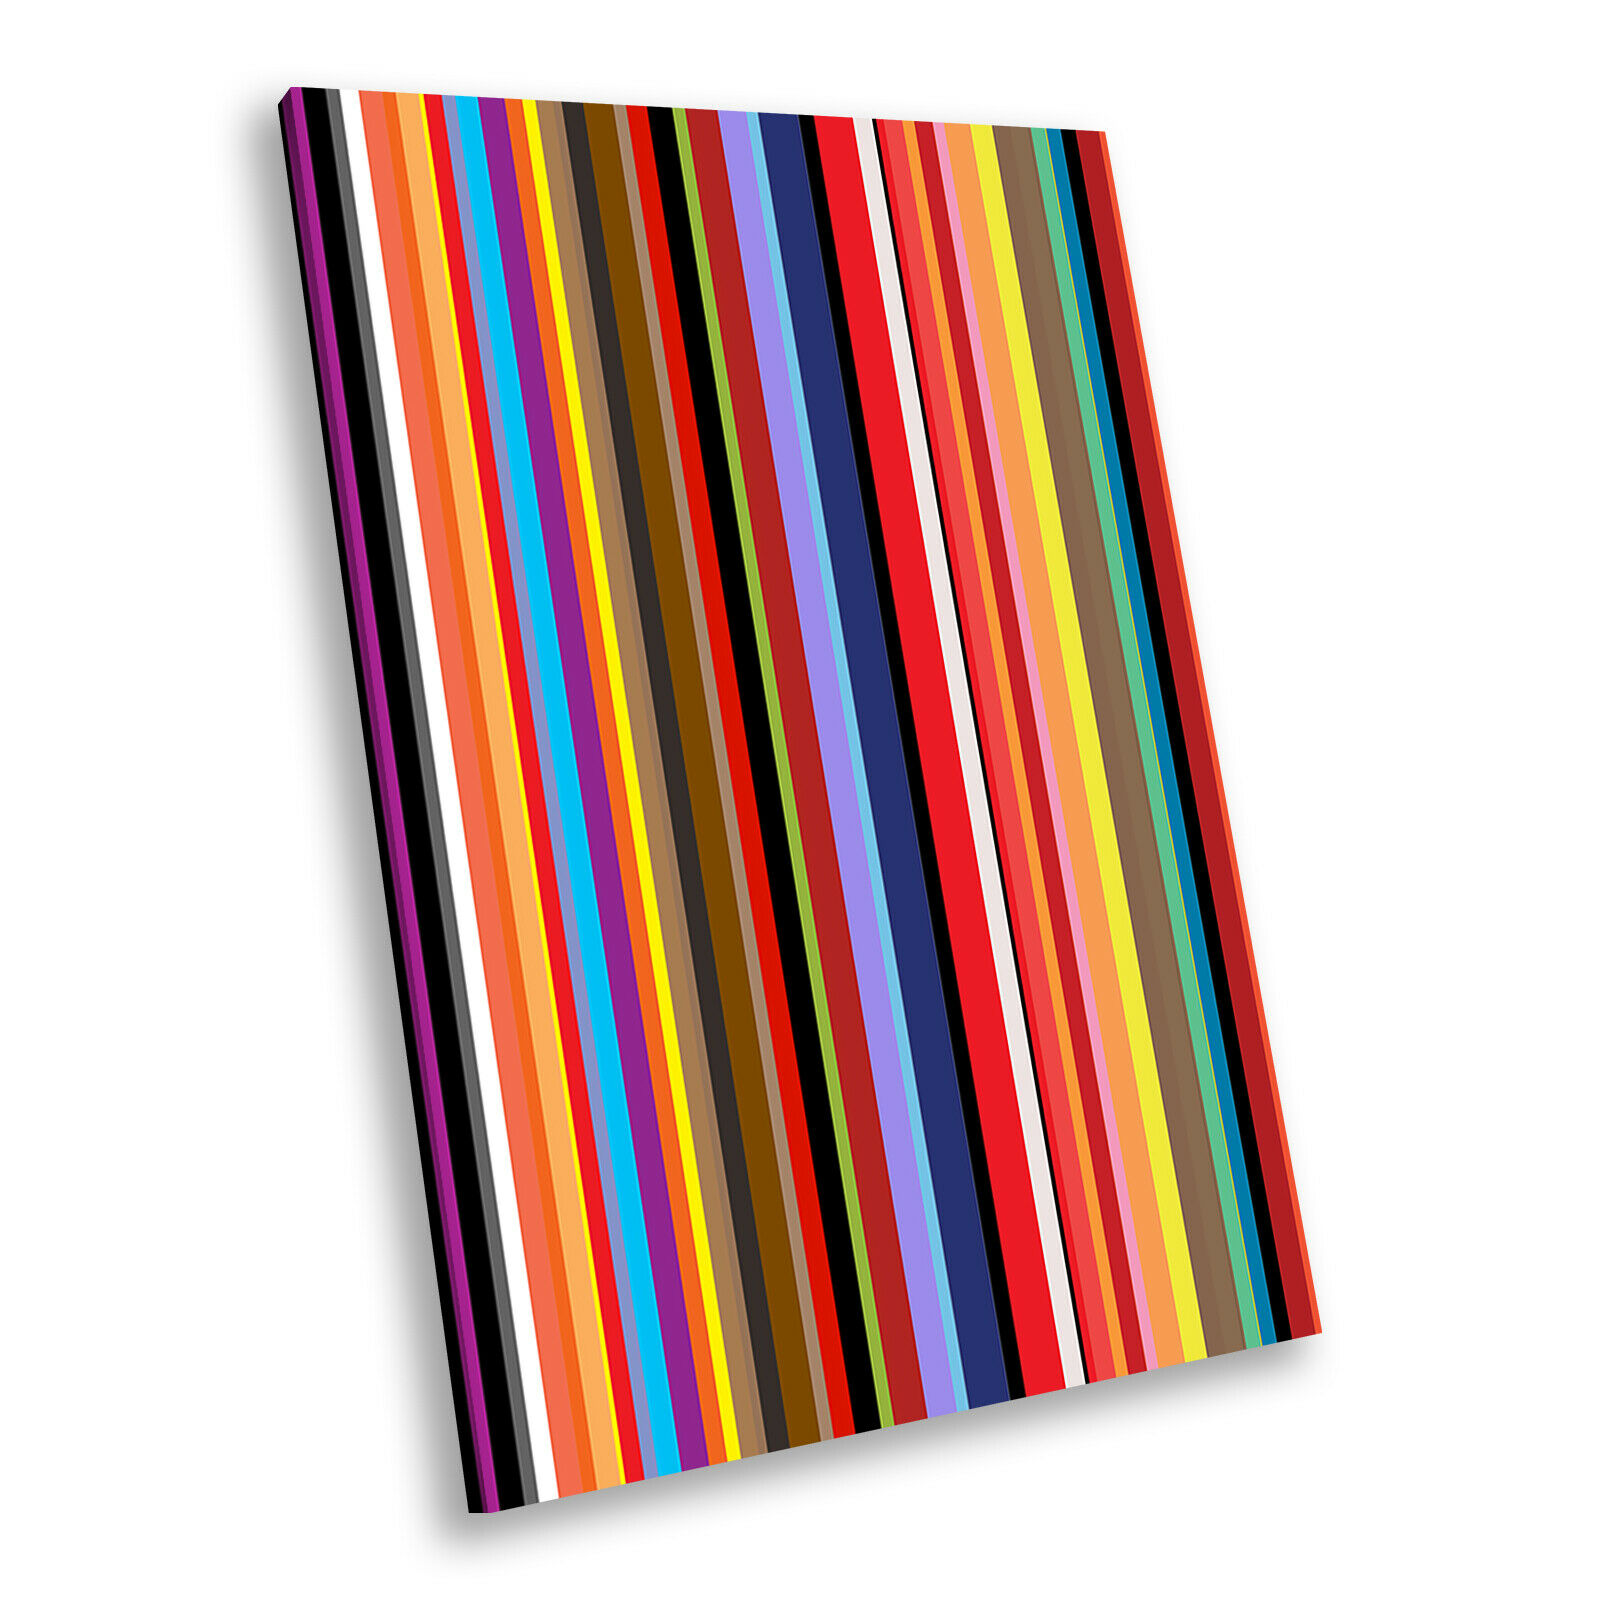 Colourful Blau braun Portrait Abstract Canvas Framed Art Large Picture